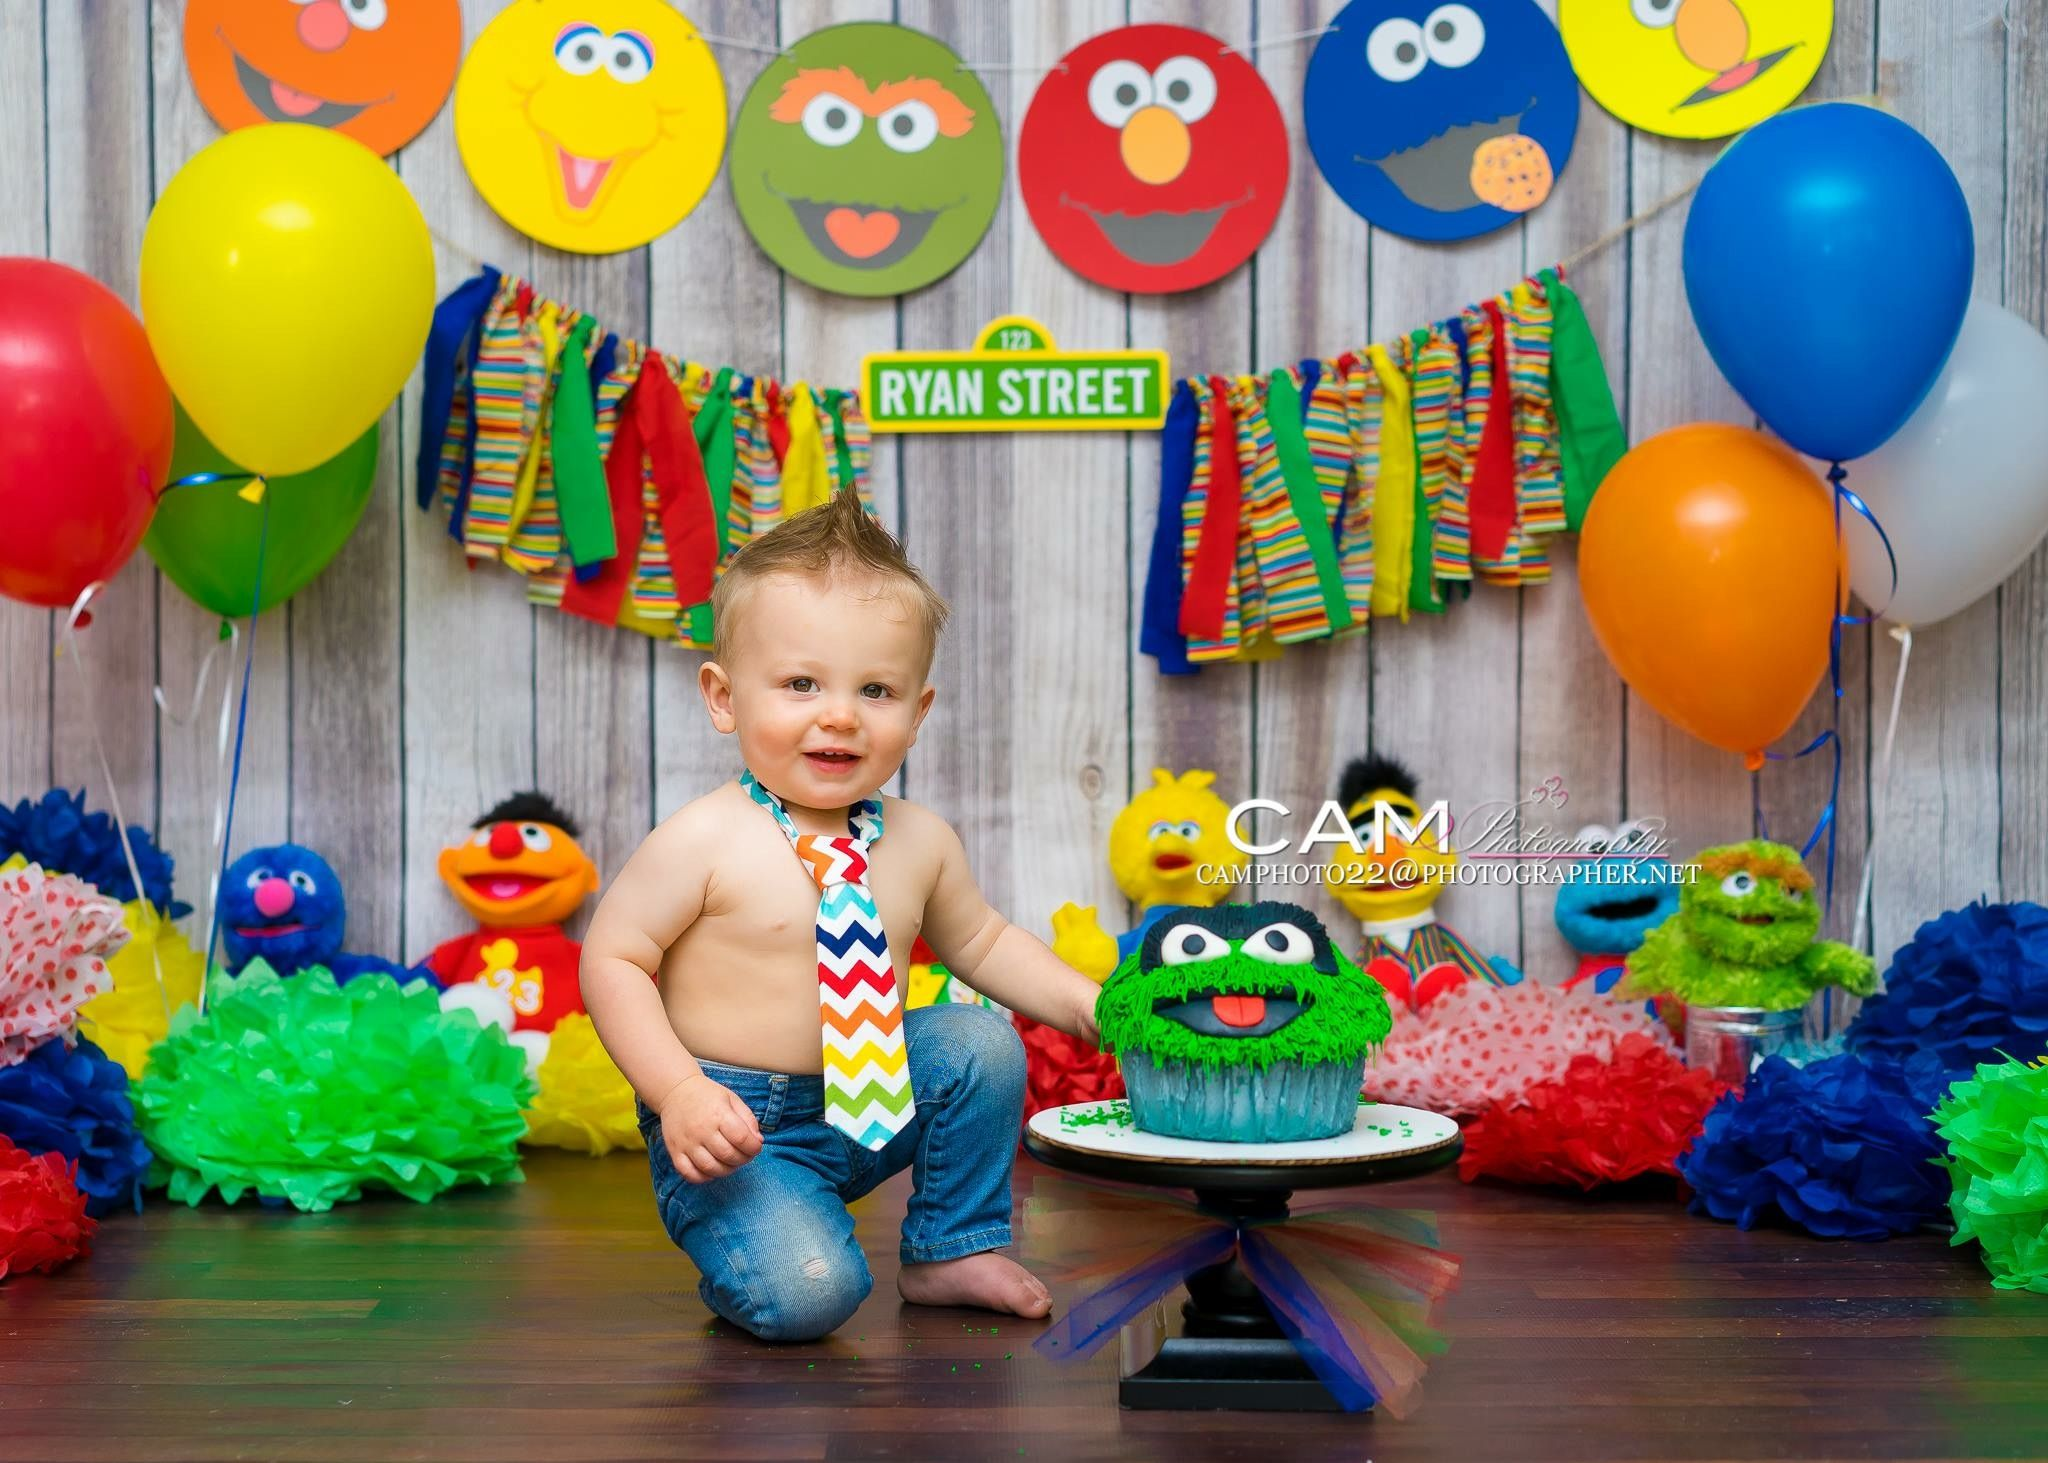 first birthday invitation template india%0A My Son u    s  st Birthday Pictures  Sesame Street Theme        Austin u    s  st Bday     Pinterest   Birthday pictures  Sesame streets and Birthdays